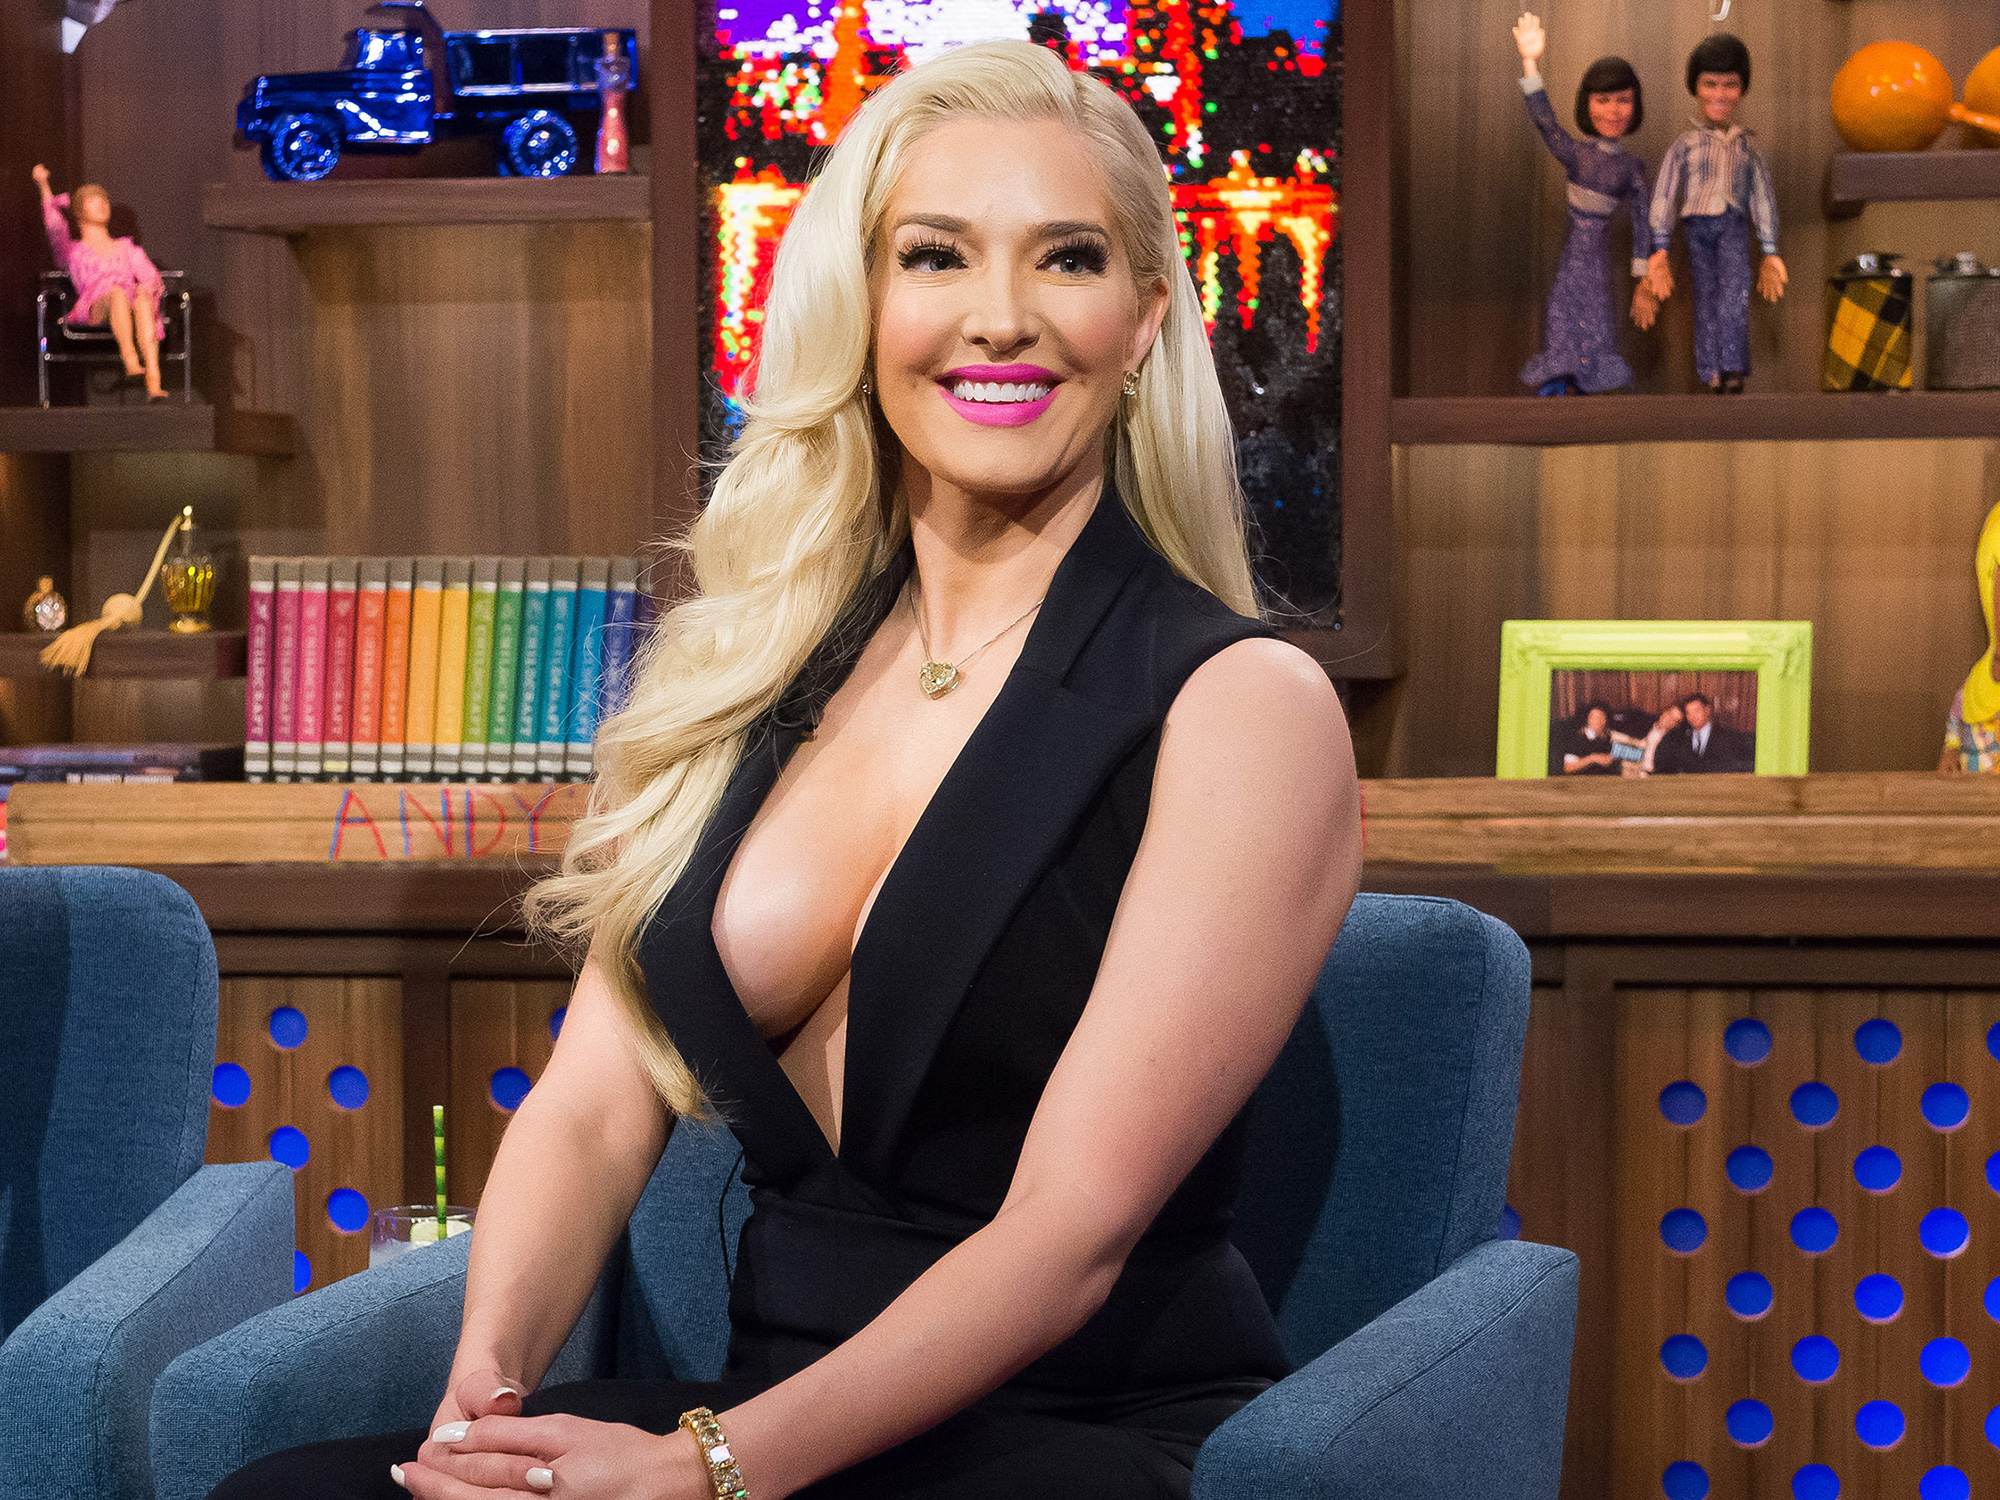 WATCH WHAT HAPPENS LIVE -- Pictured: Erika Girardi -- (Photo by: Charles Sykes/Bravo/NBCU Photo Bank via Getty Images)